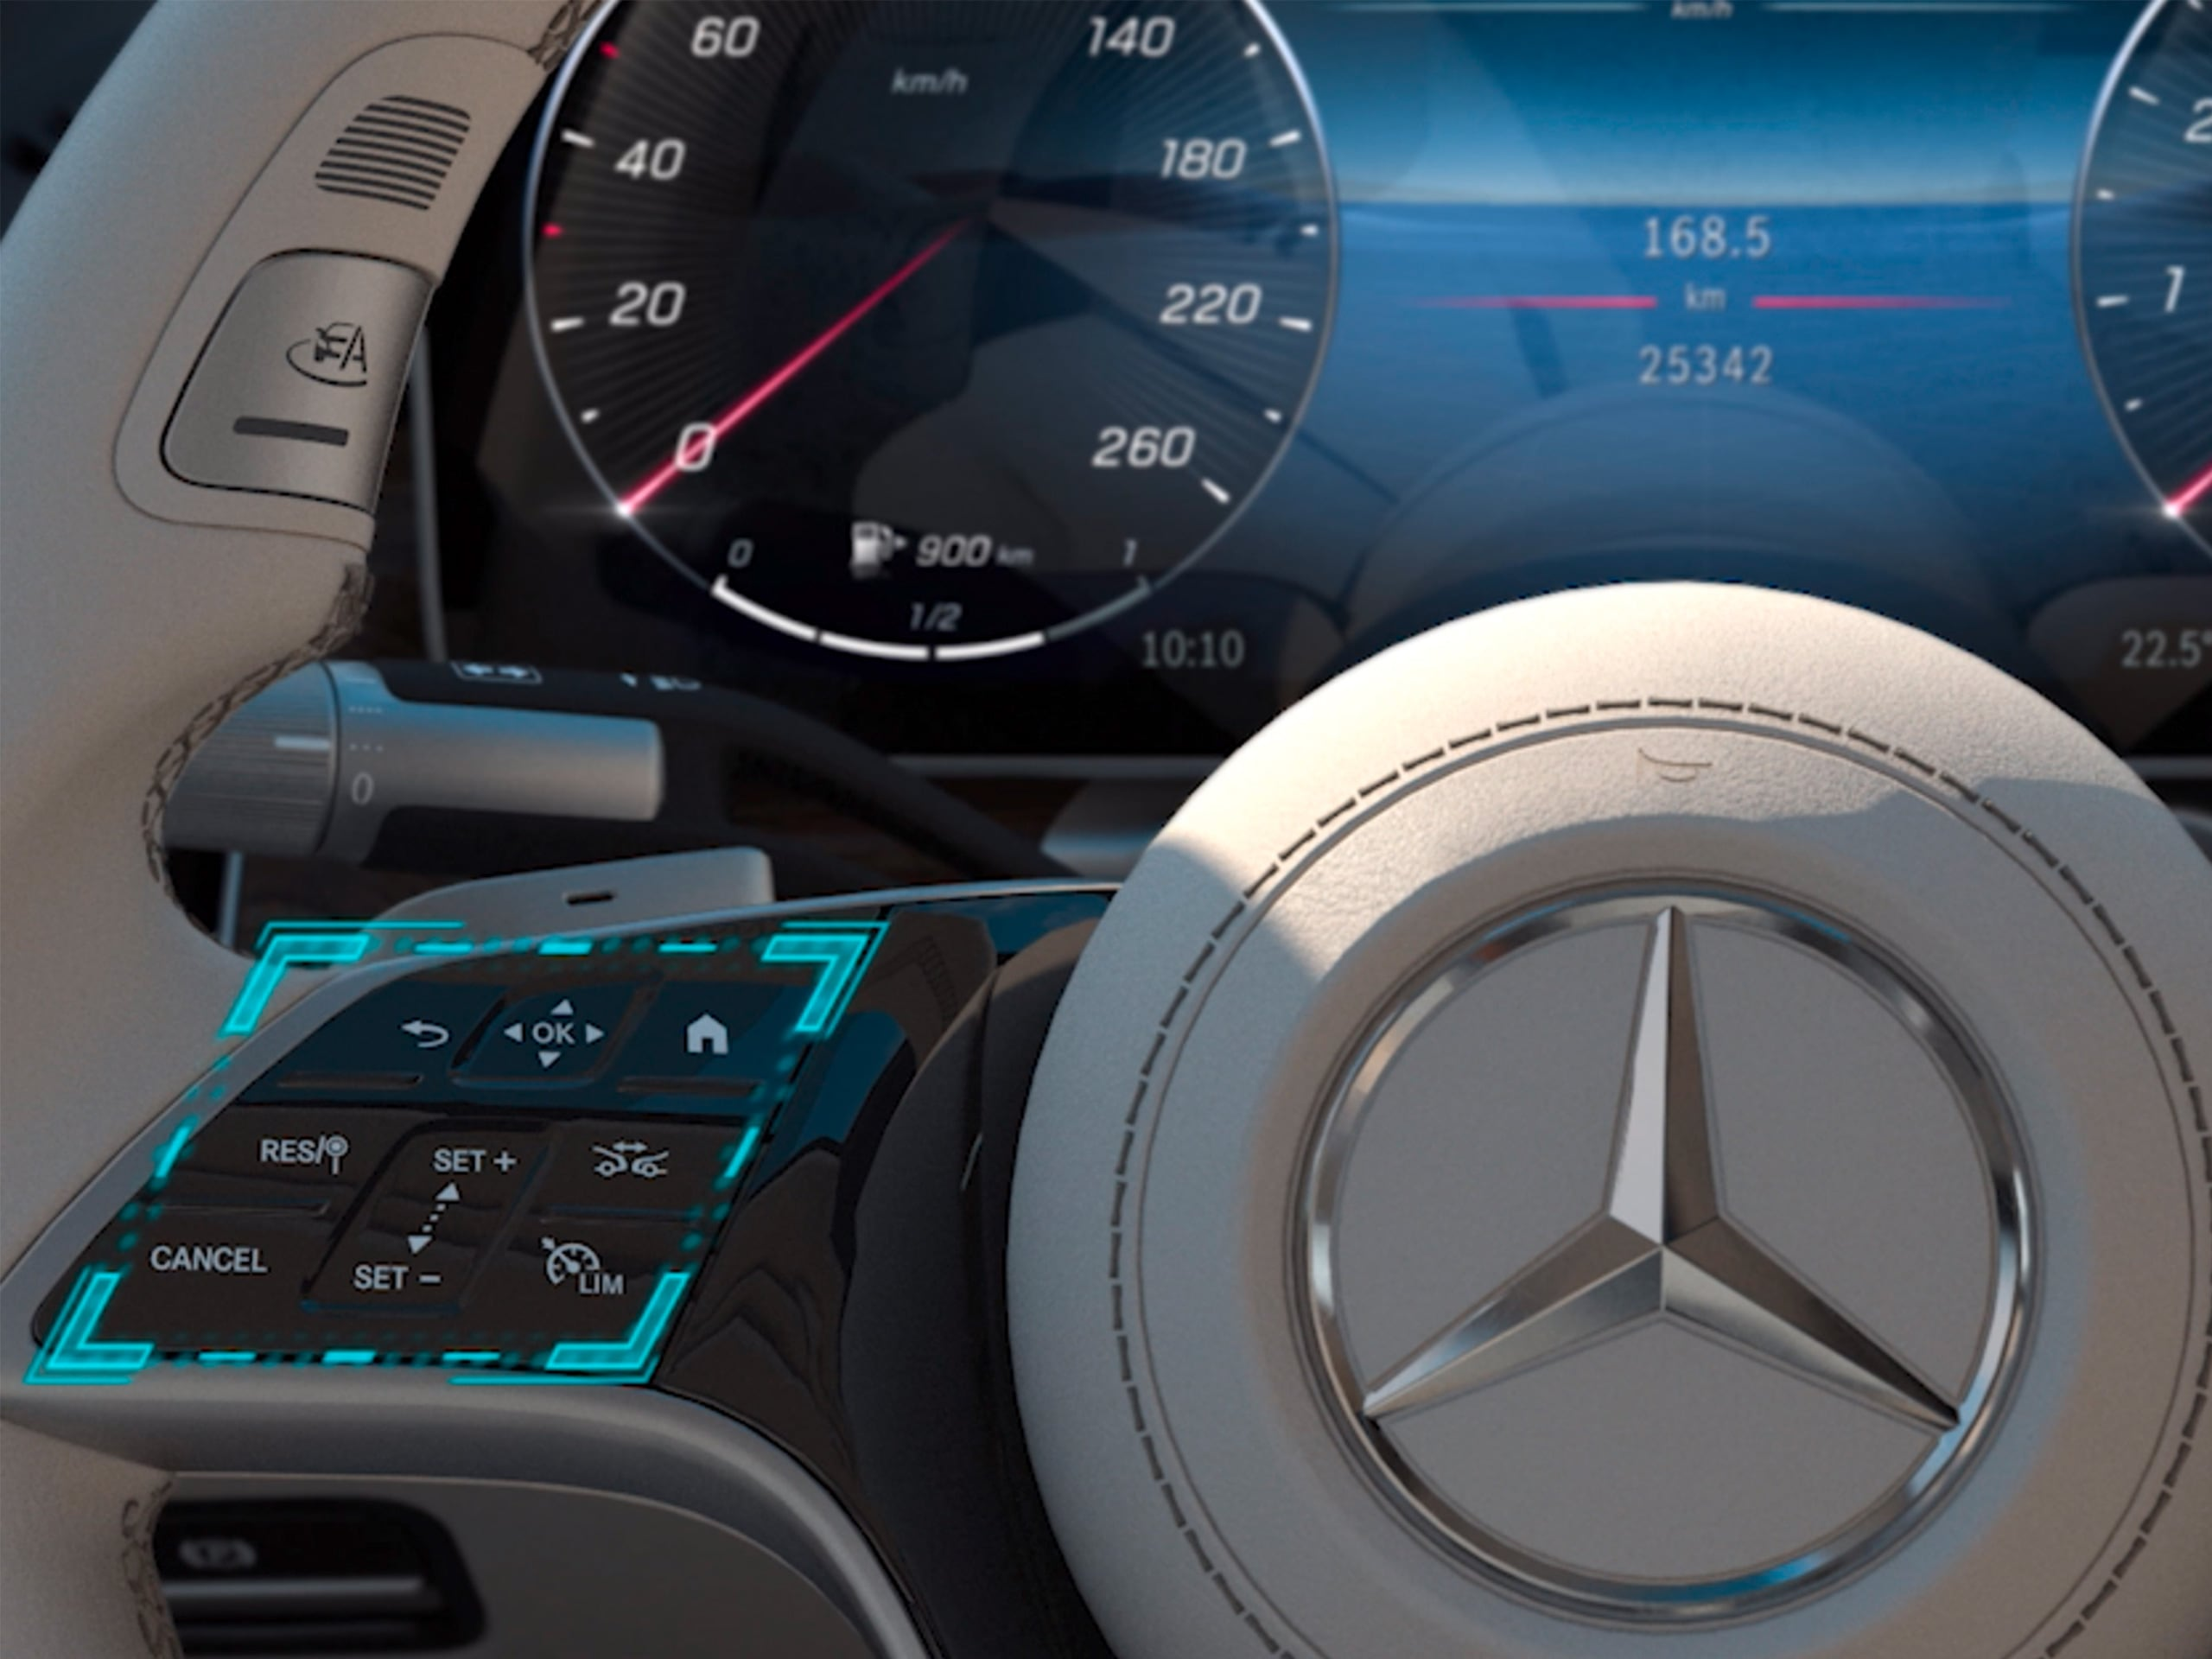 The video shows how the MBUX touch control concept of the Mercedes-Benz C-Class works.